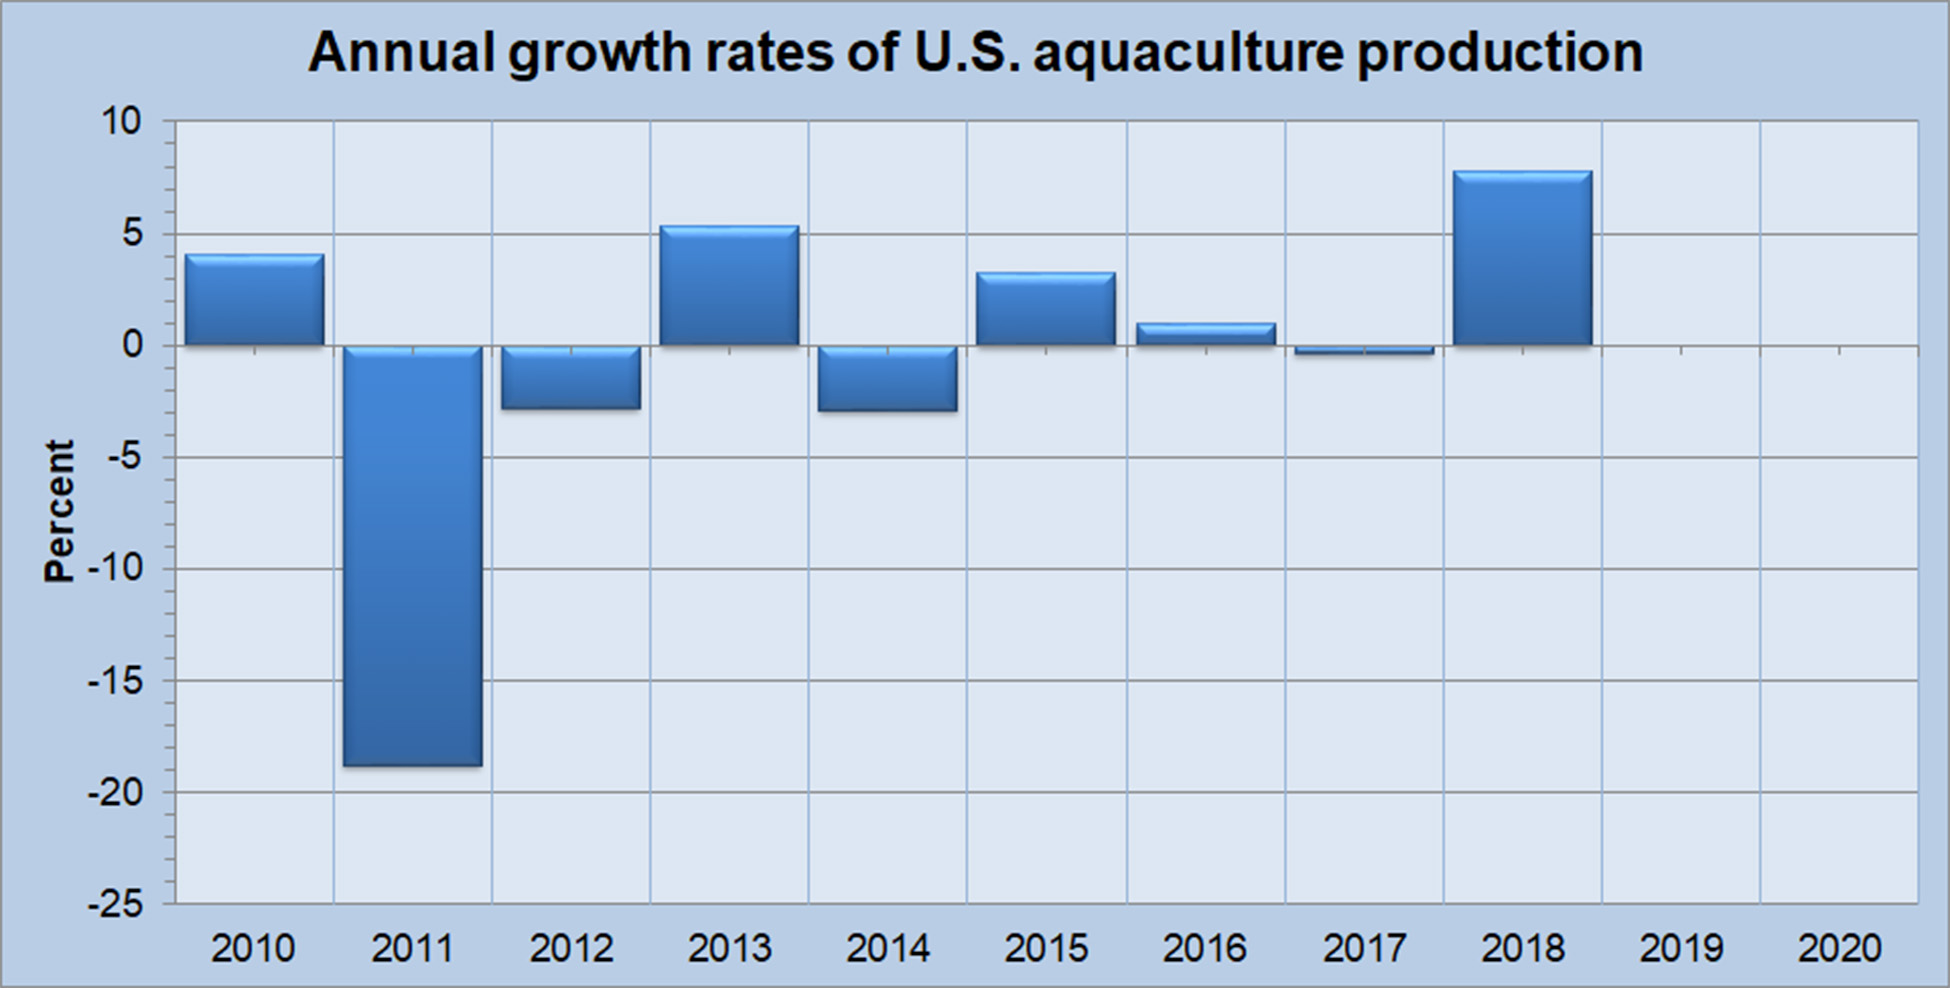 Annual Growth in U.S Aquaculture Production - All Species